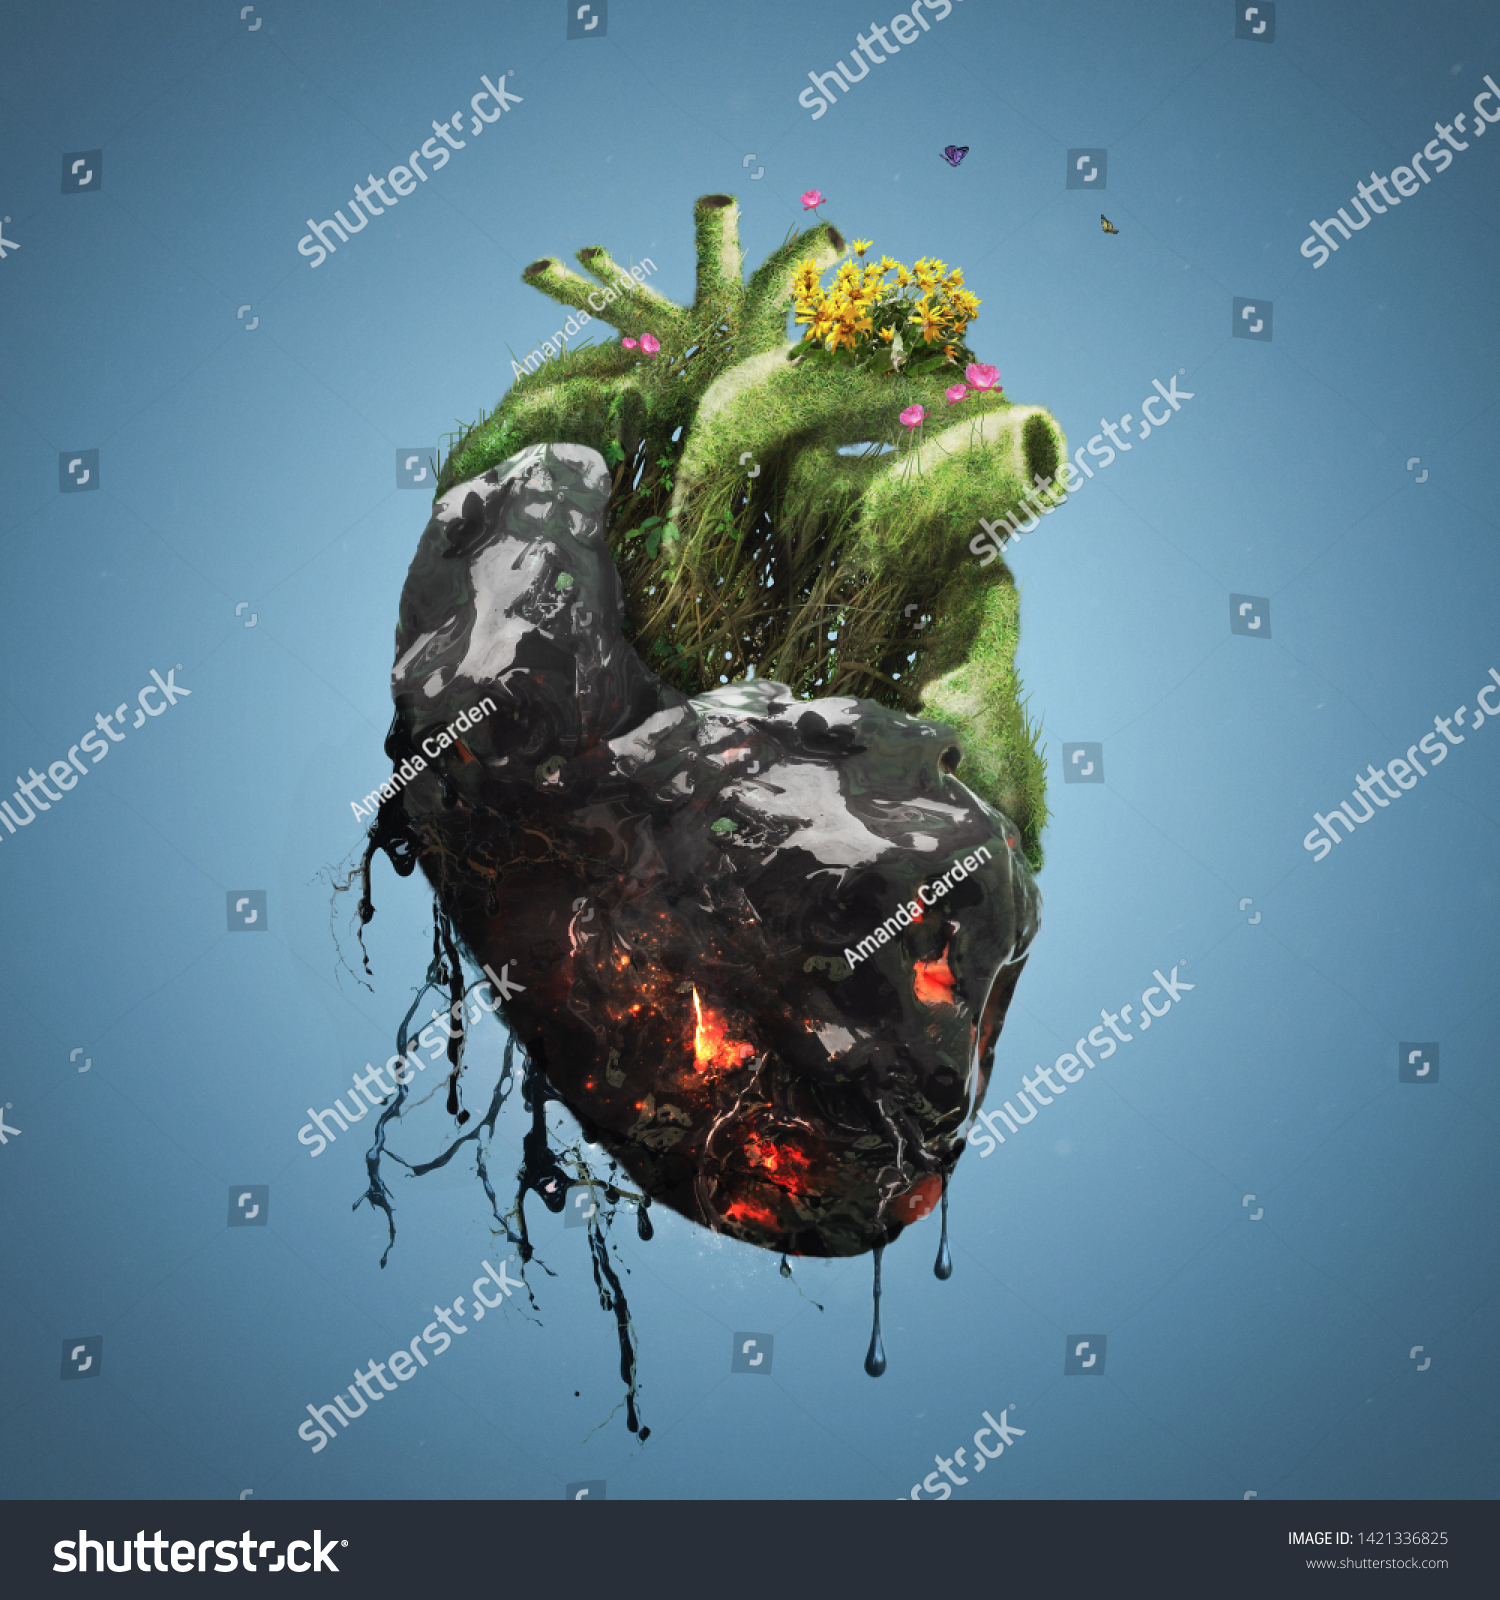 Human Heart Covered Tar Death On Stock Photo (Edit Now) 1421336825